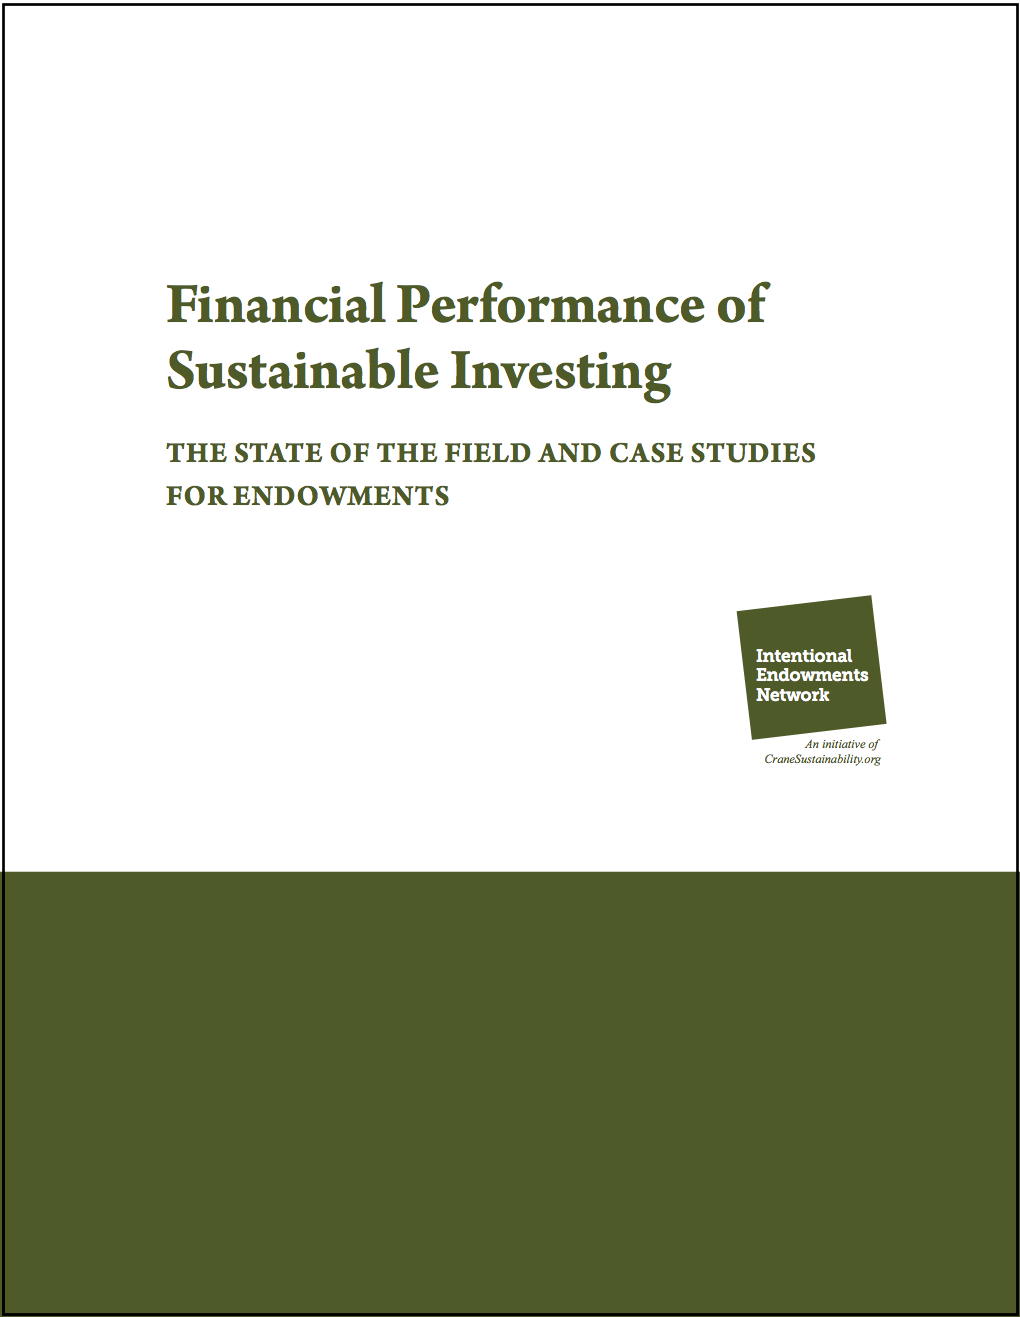 Endowment_Financial_Performance_Sustainable_Investing_-thumbnail.jpg